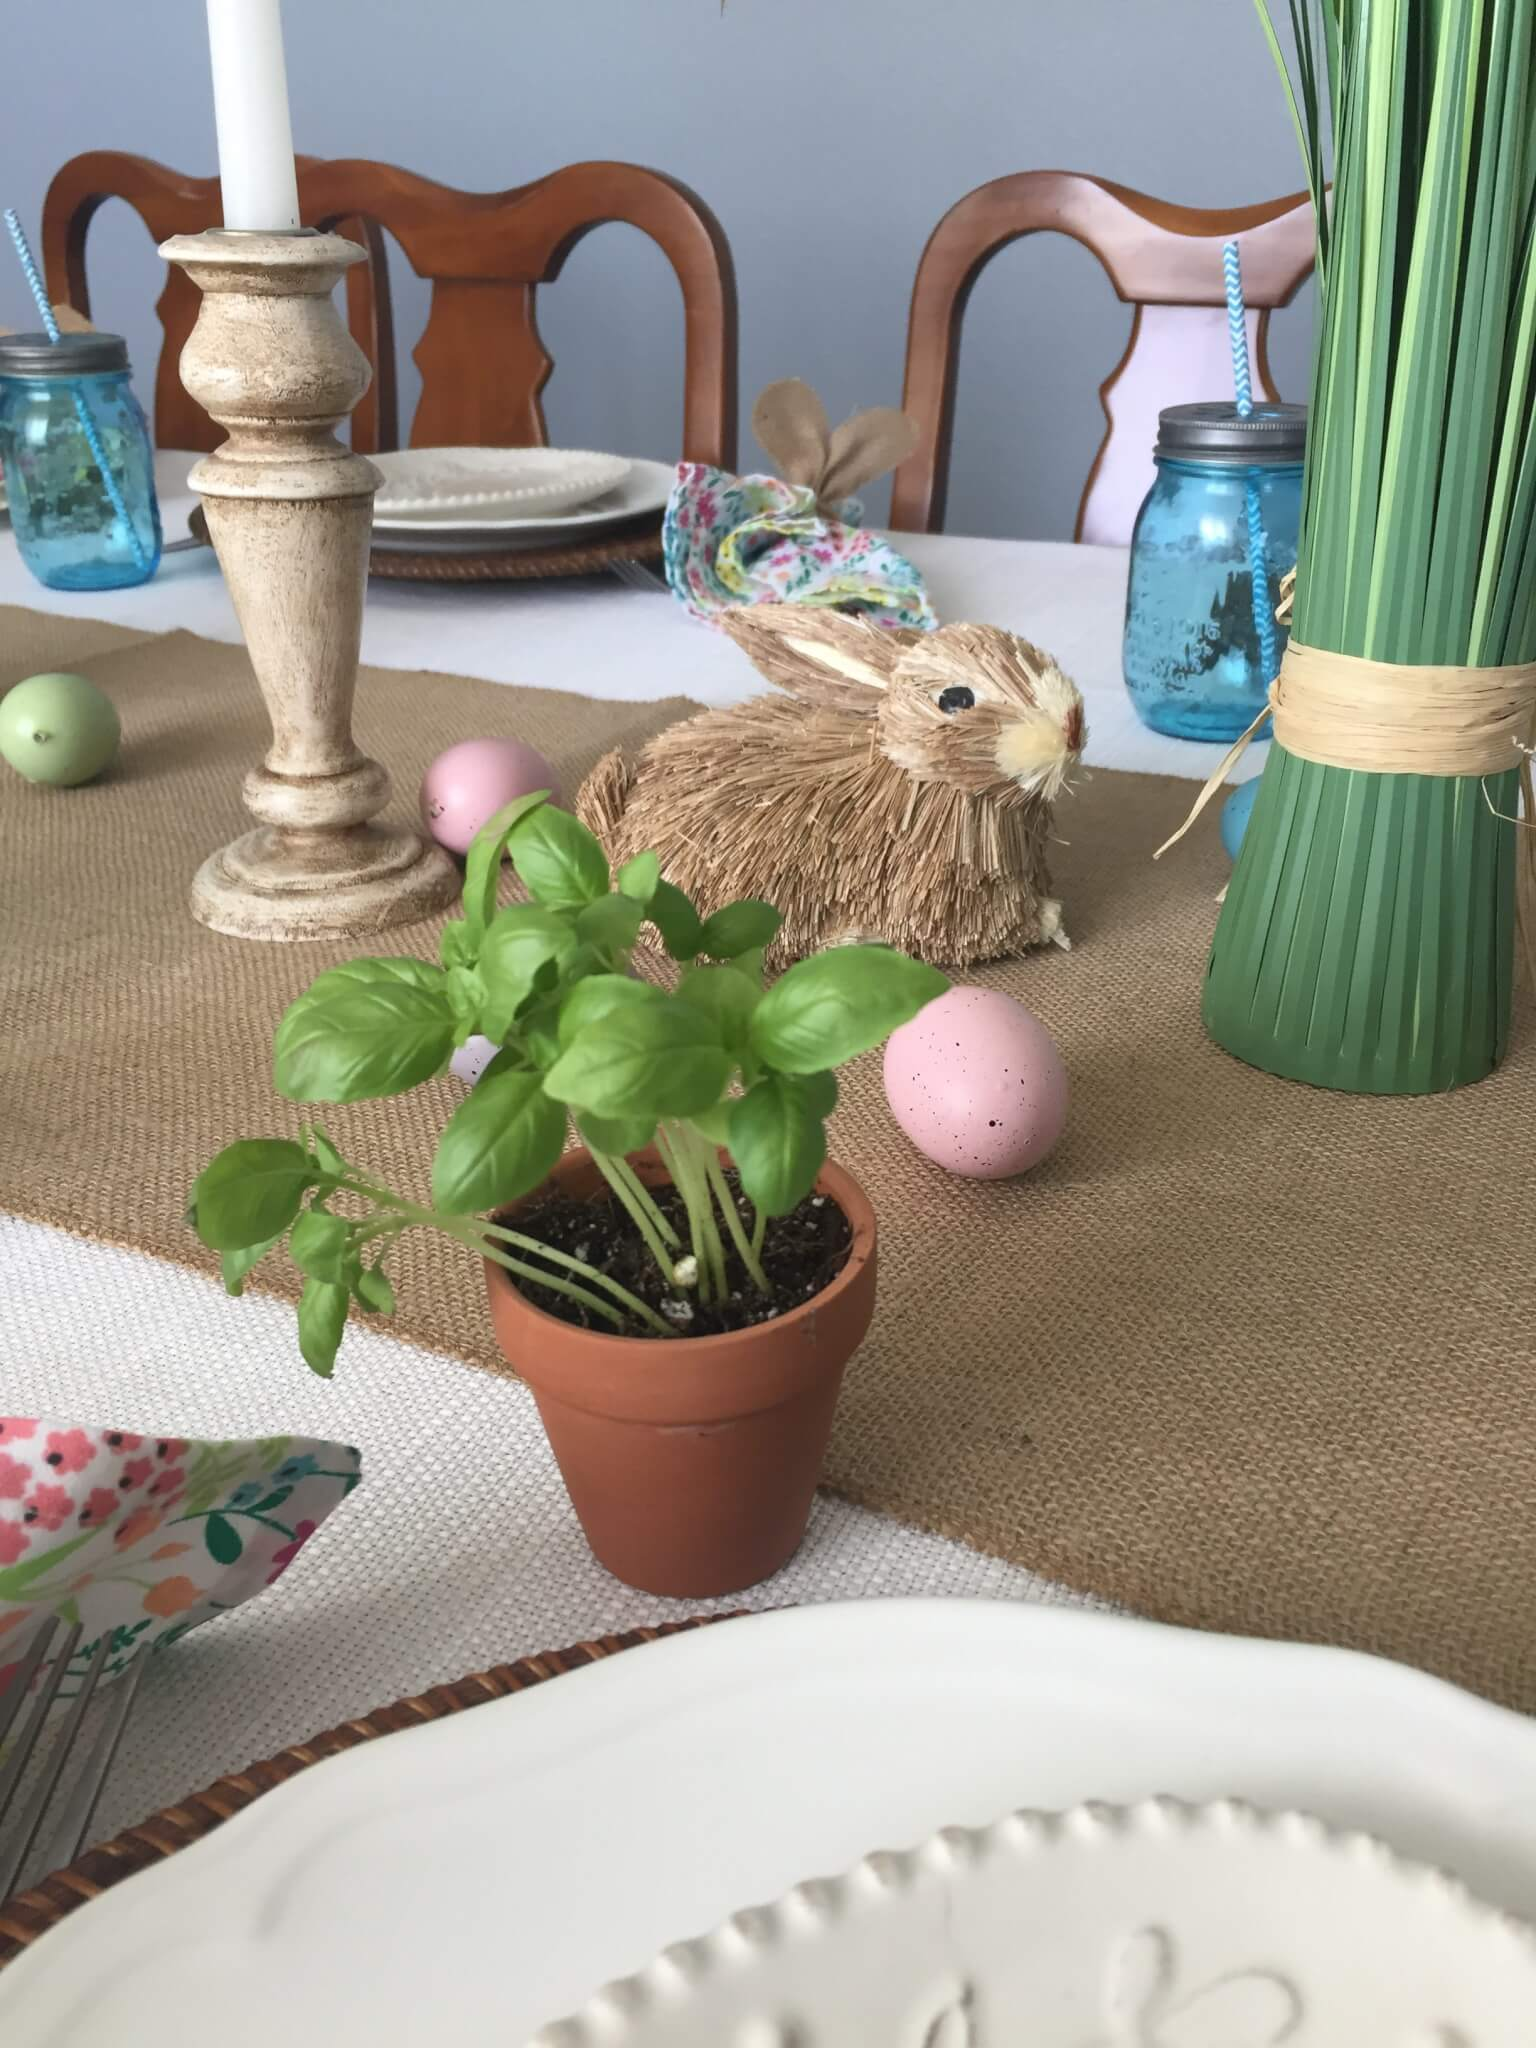 Adorable mini herb favors for your spring or Easter tablescape.